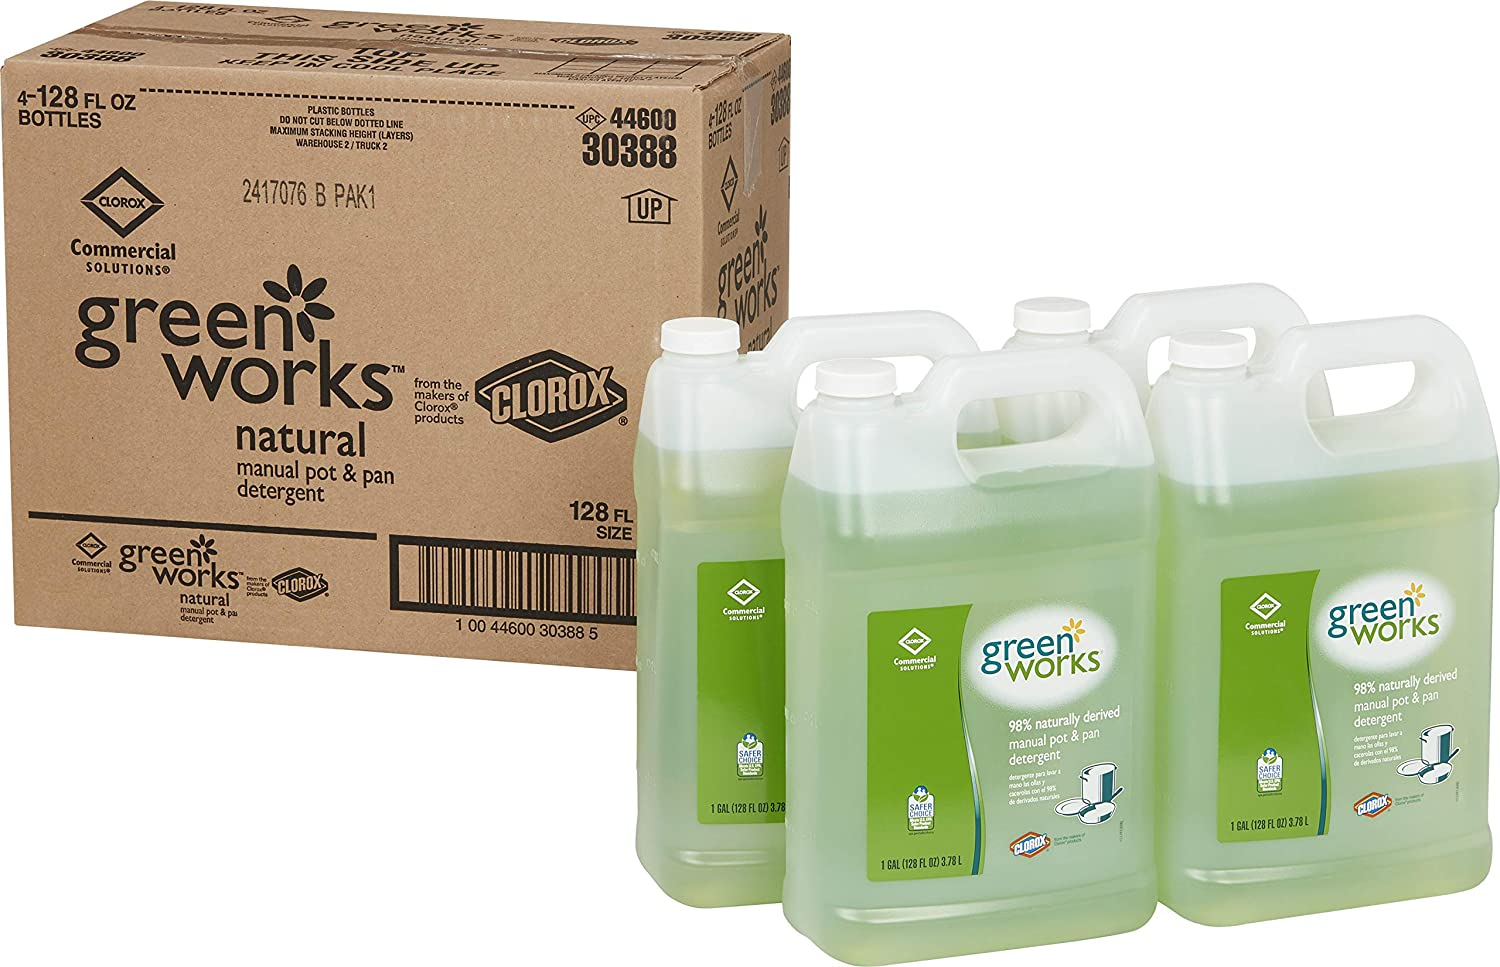 Clorox Commercial Solutions Green Works Manual Pot & Pan Dishwashing Liquid, 128 Ounces Each (Pack of 4) (30388)